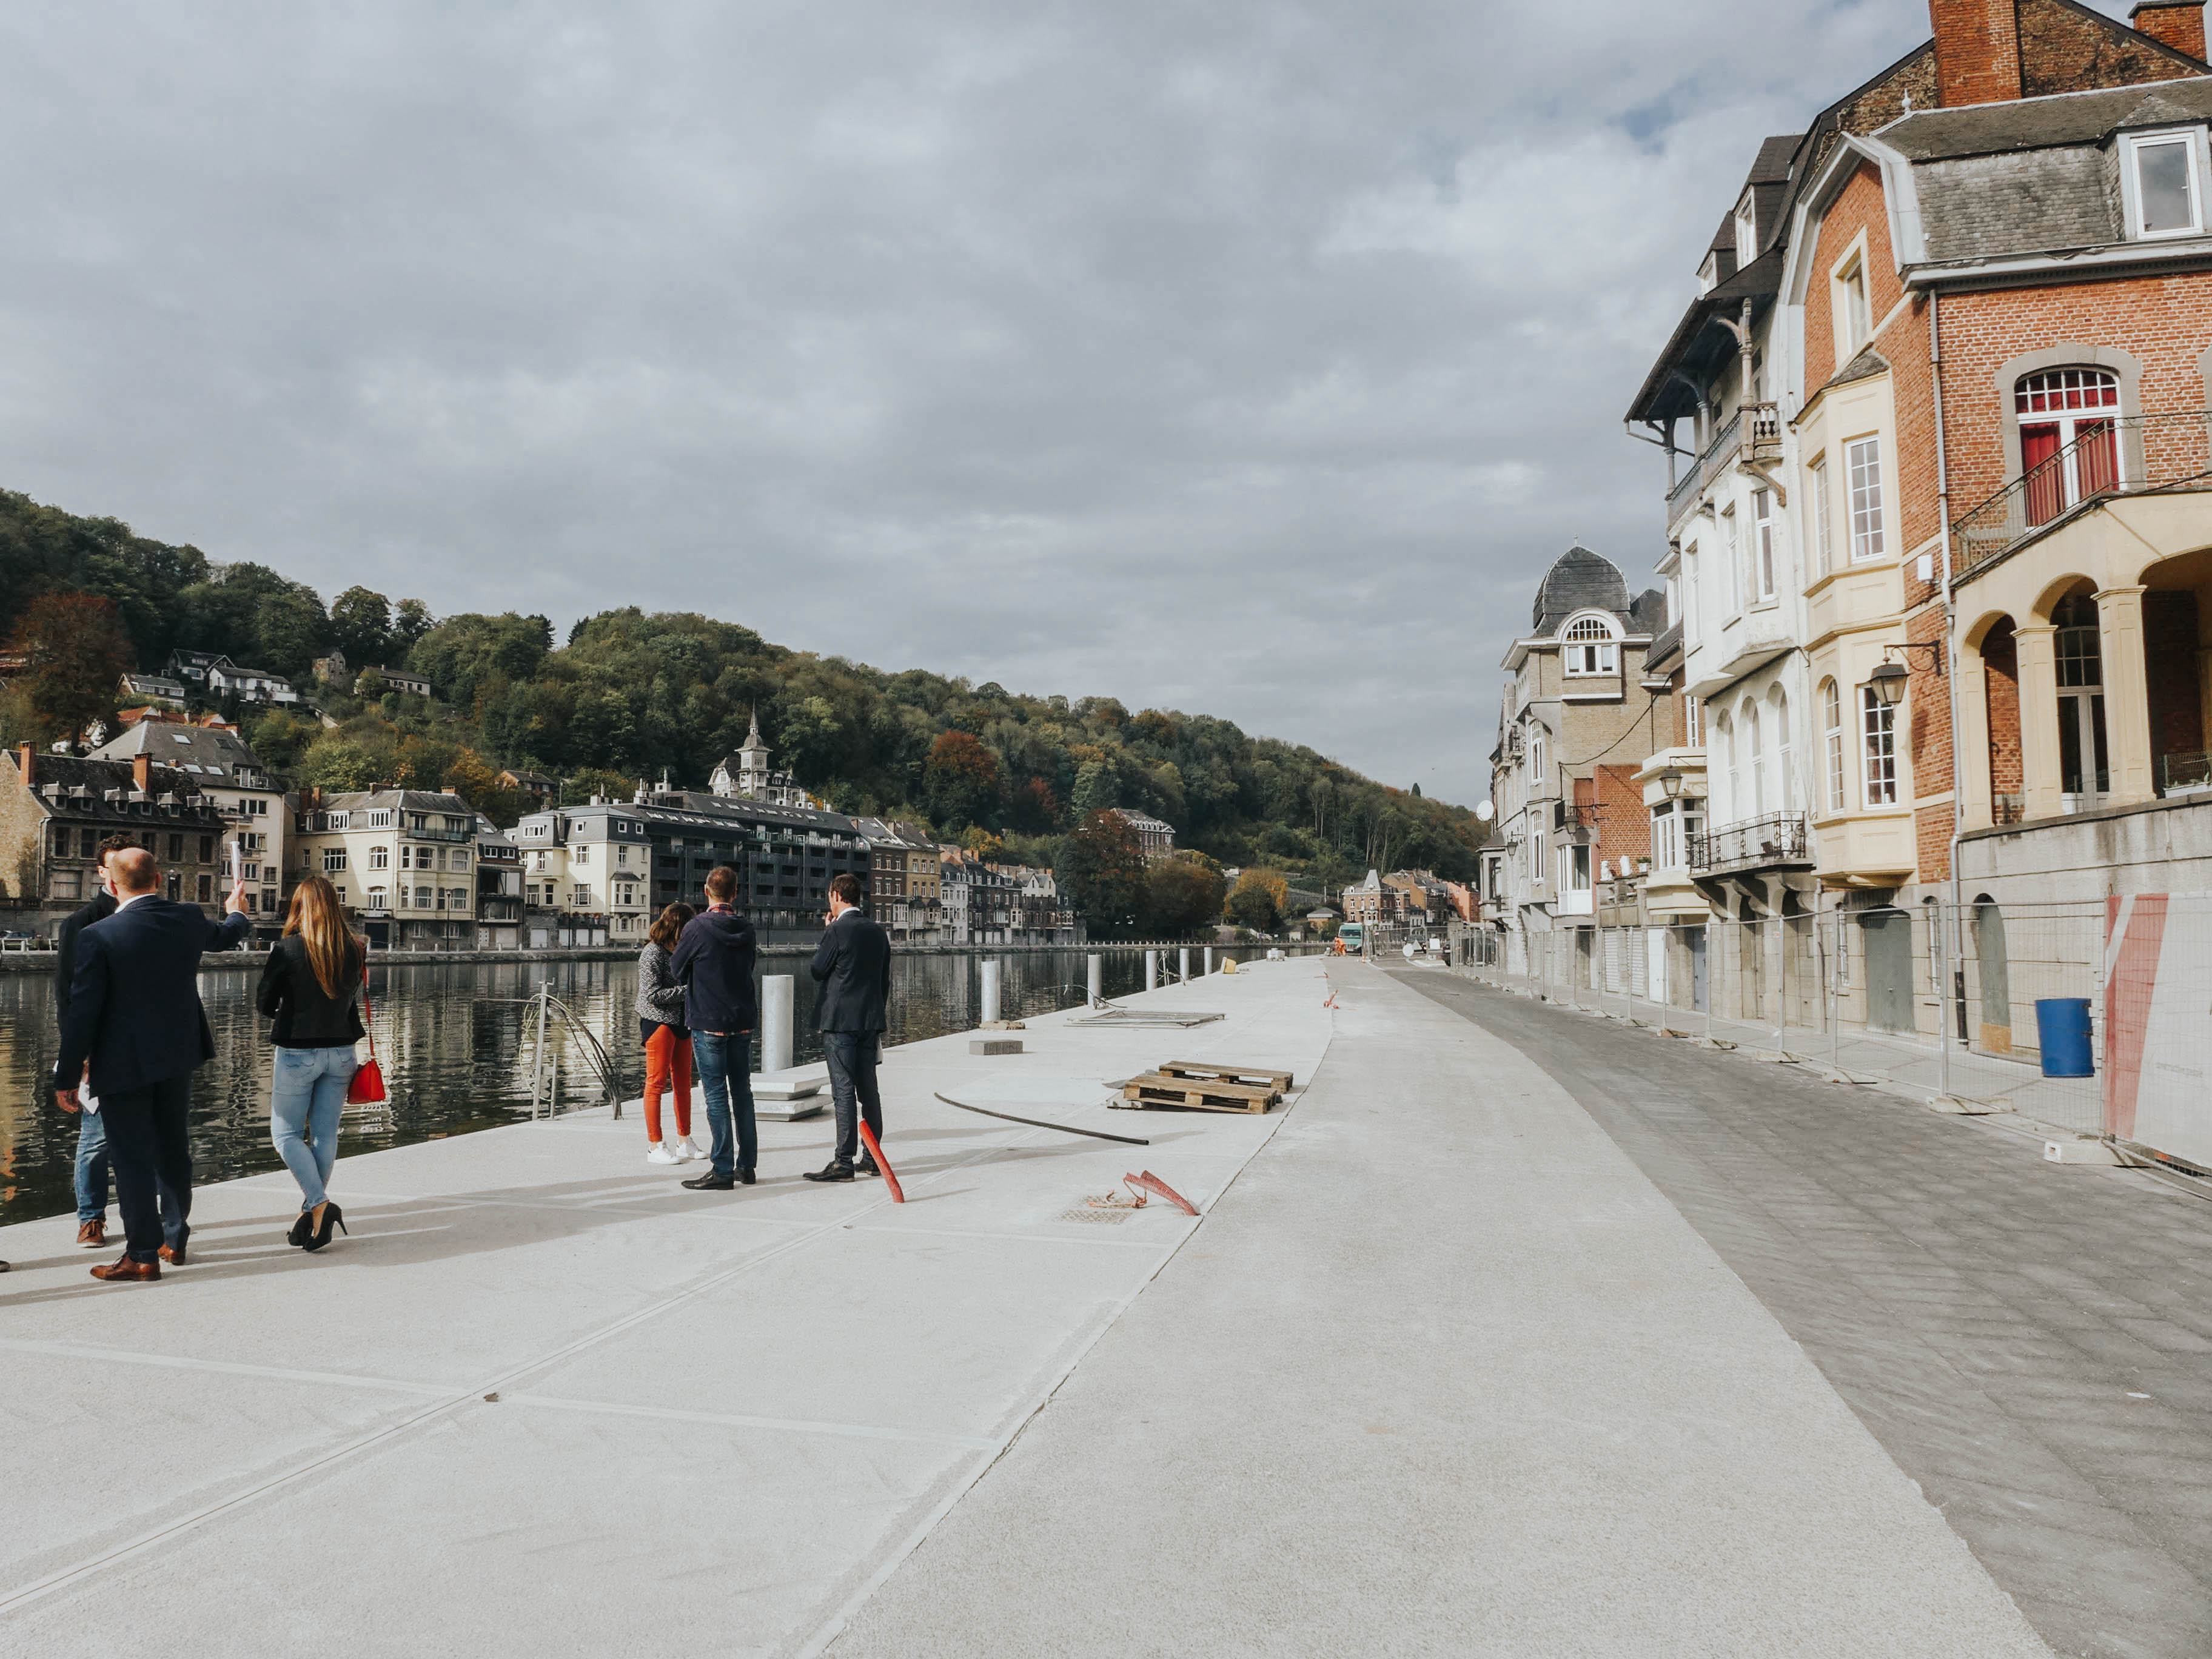 Dinant – Practical implementation of the action plan